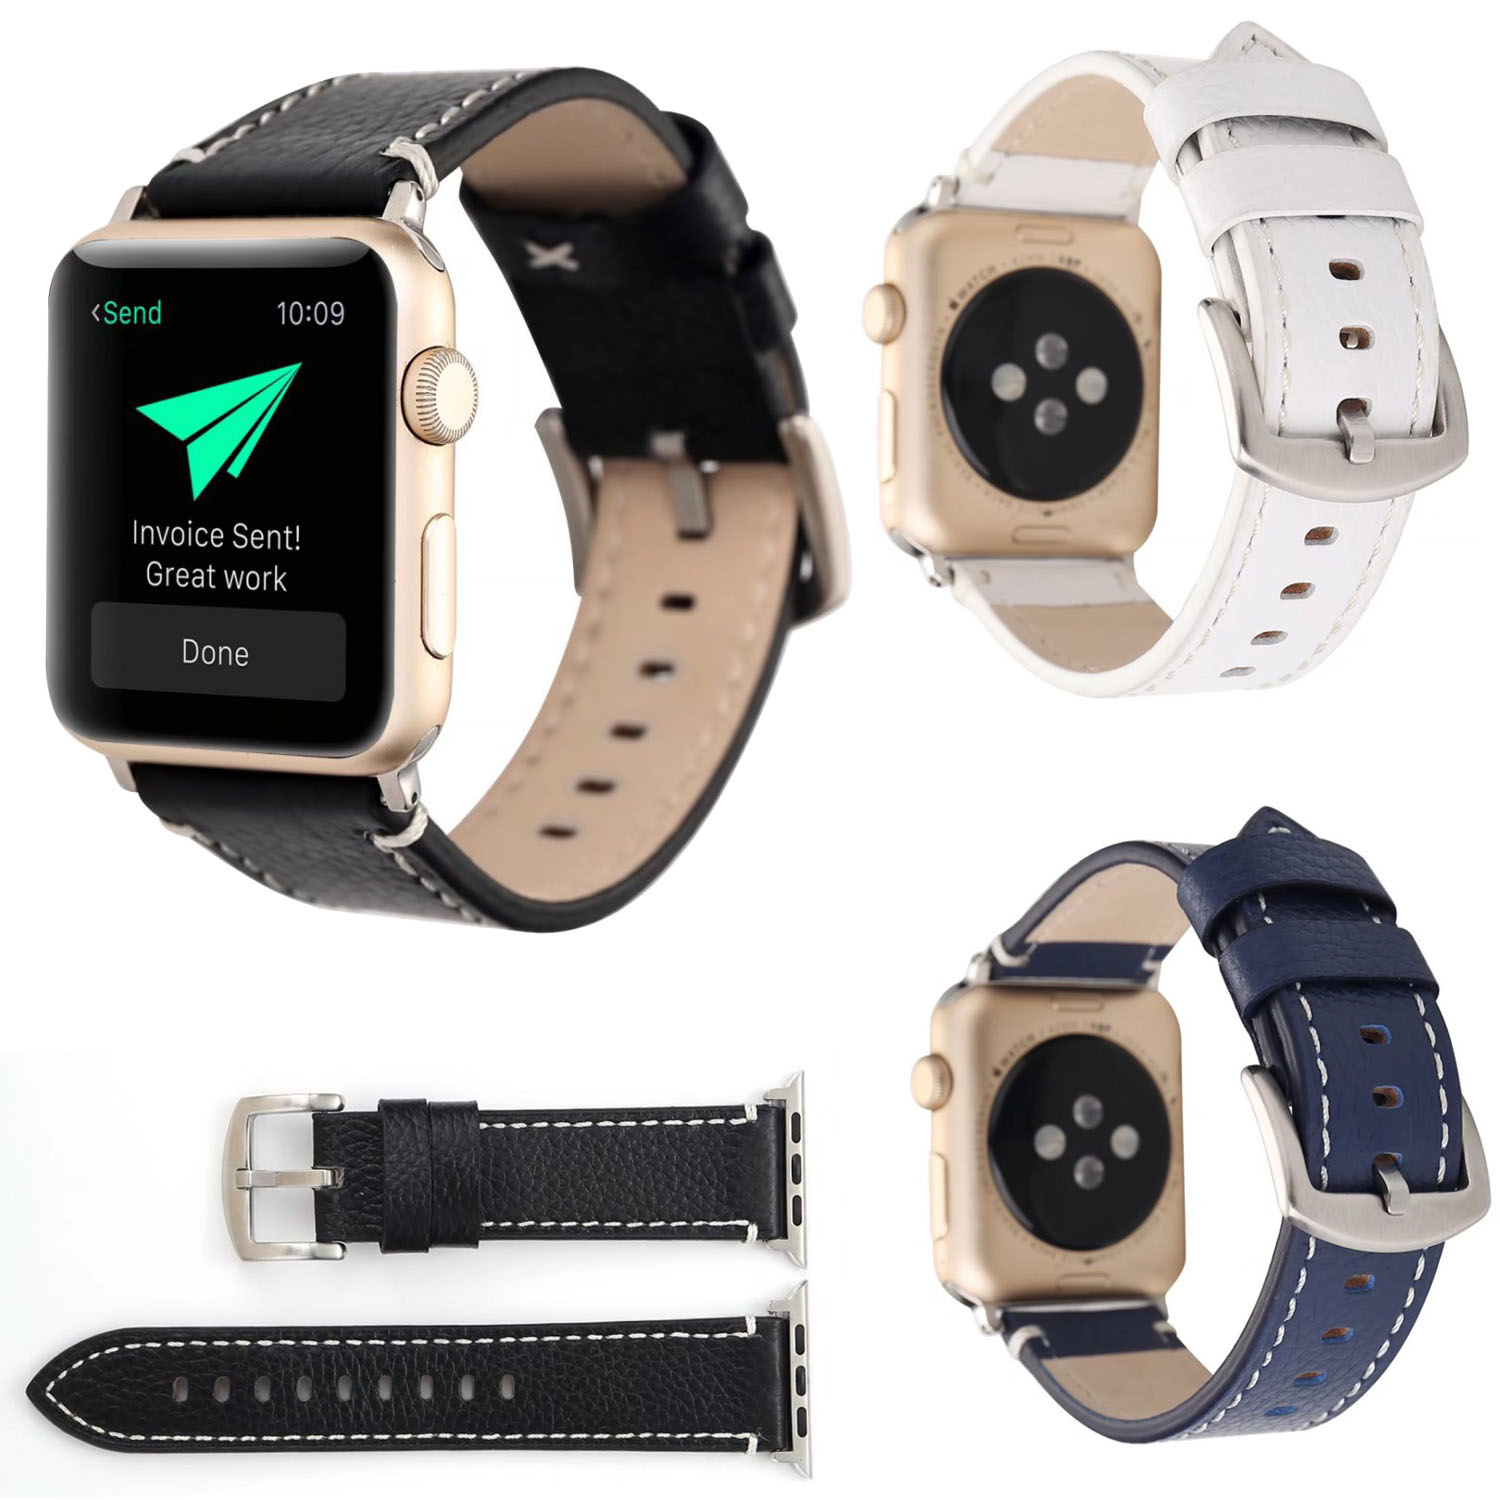 DAHASE Litchi Genuine Leather Watch Band for Apple Watch Series 3 Strap Belt Wristband for iWatch 1/2/3 Bracelet 42mm 38mm woven canvas casual sports watch band iwatch strap genuine leather watch belt for apple watch